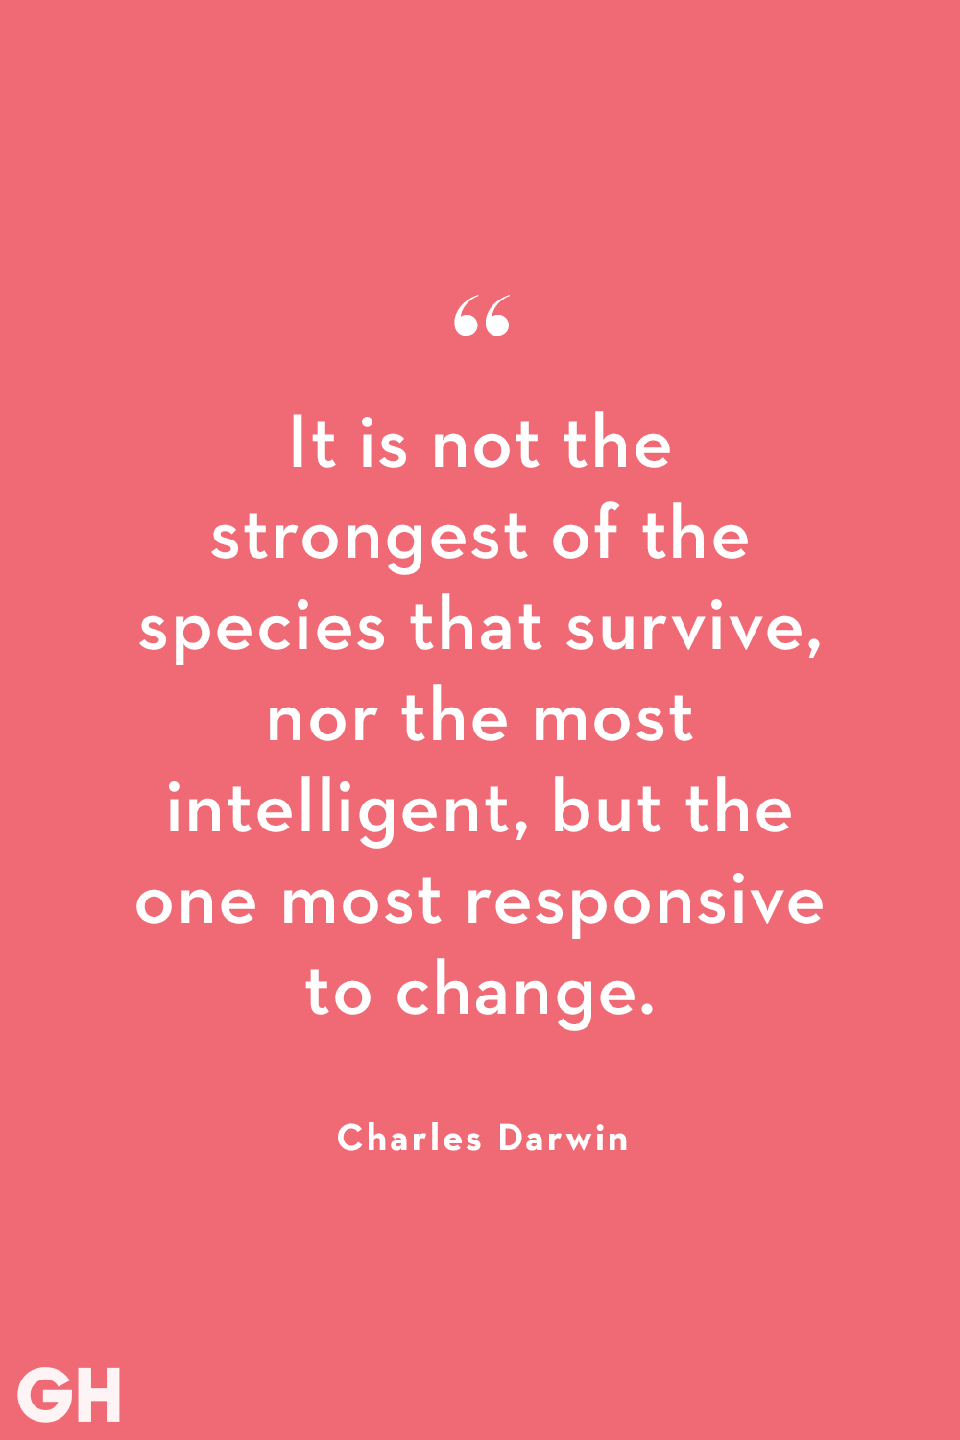 <p>It is not the strongest of the species that survive, nor the most intelligent, but the one most responsive to change.</p>